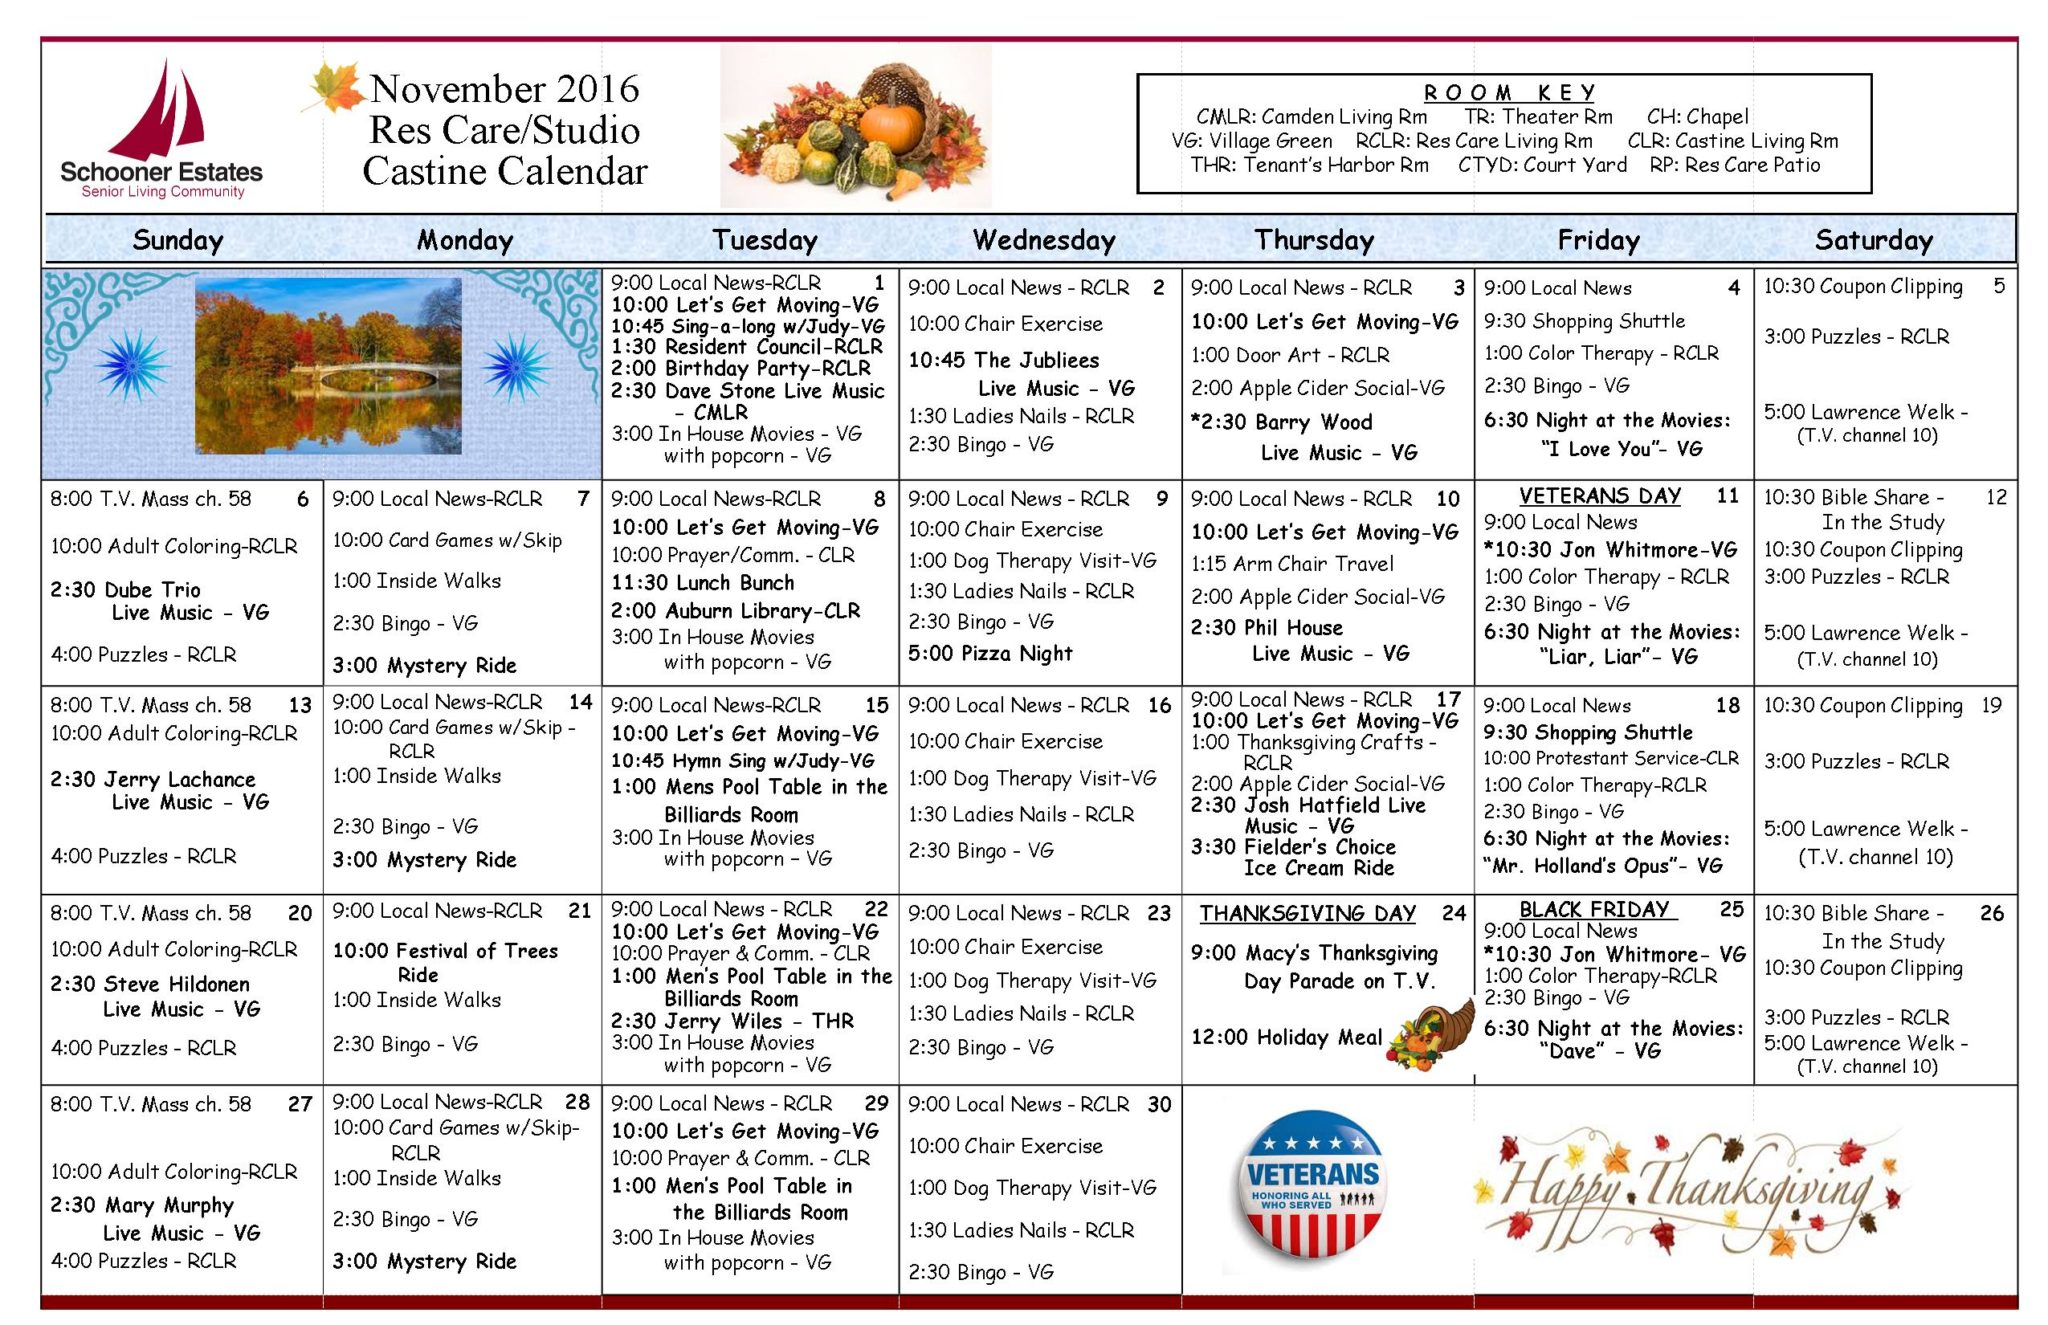 november-2016-assisted-living-and-residential-care-activity-calendar